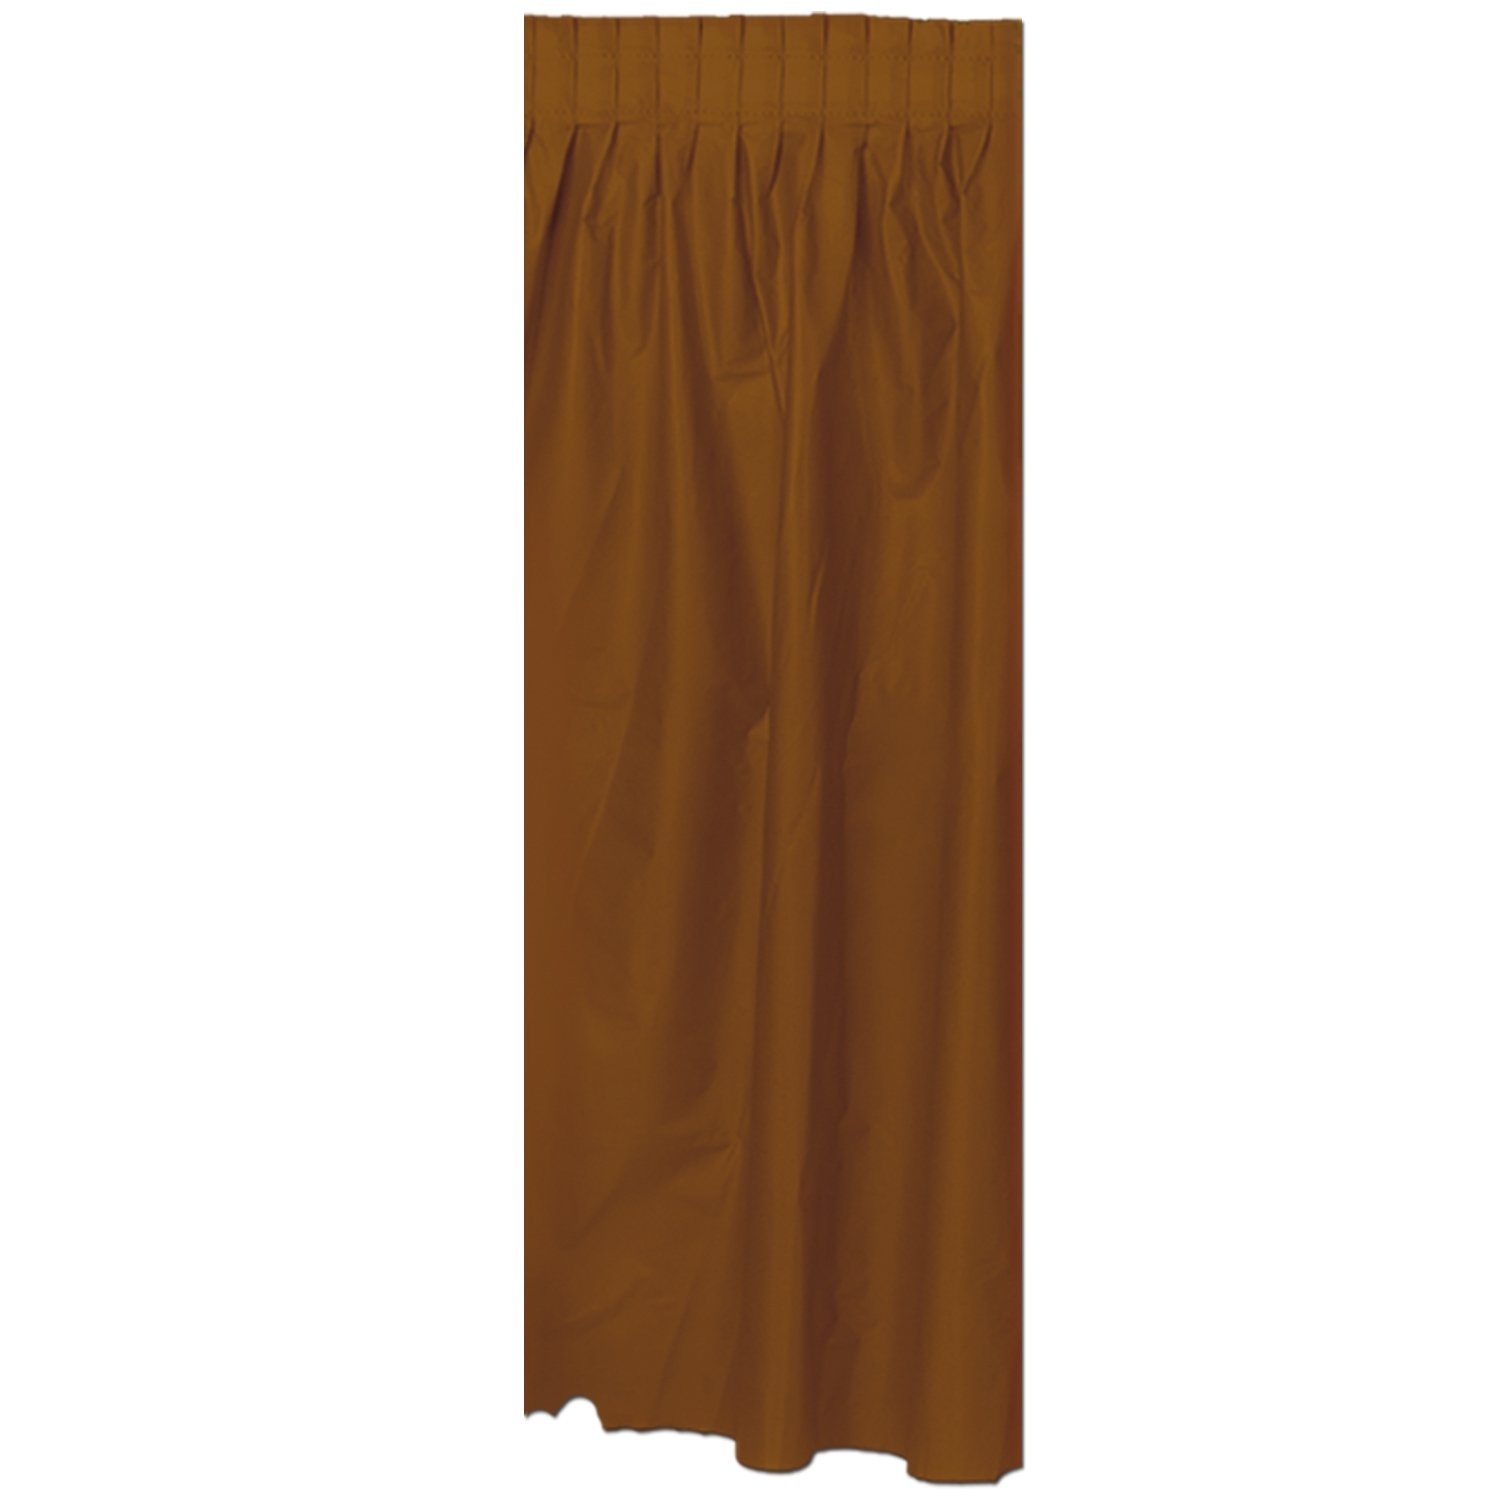 Party Accessory Masterpiece Plastic Table Skirting The Beistle Company 50950-BR chocolate brown 1//Pkg 1 count